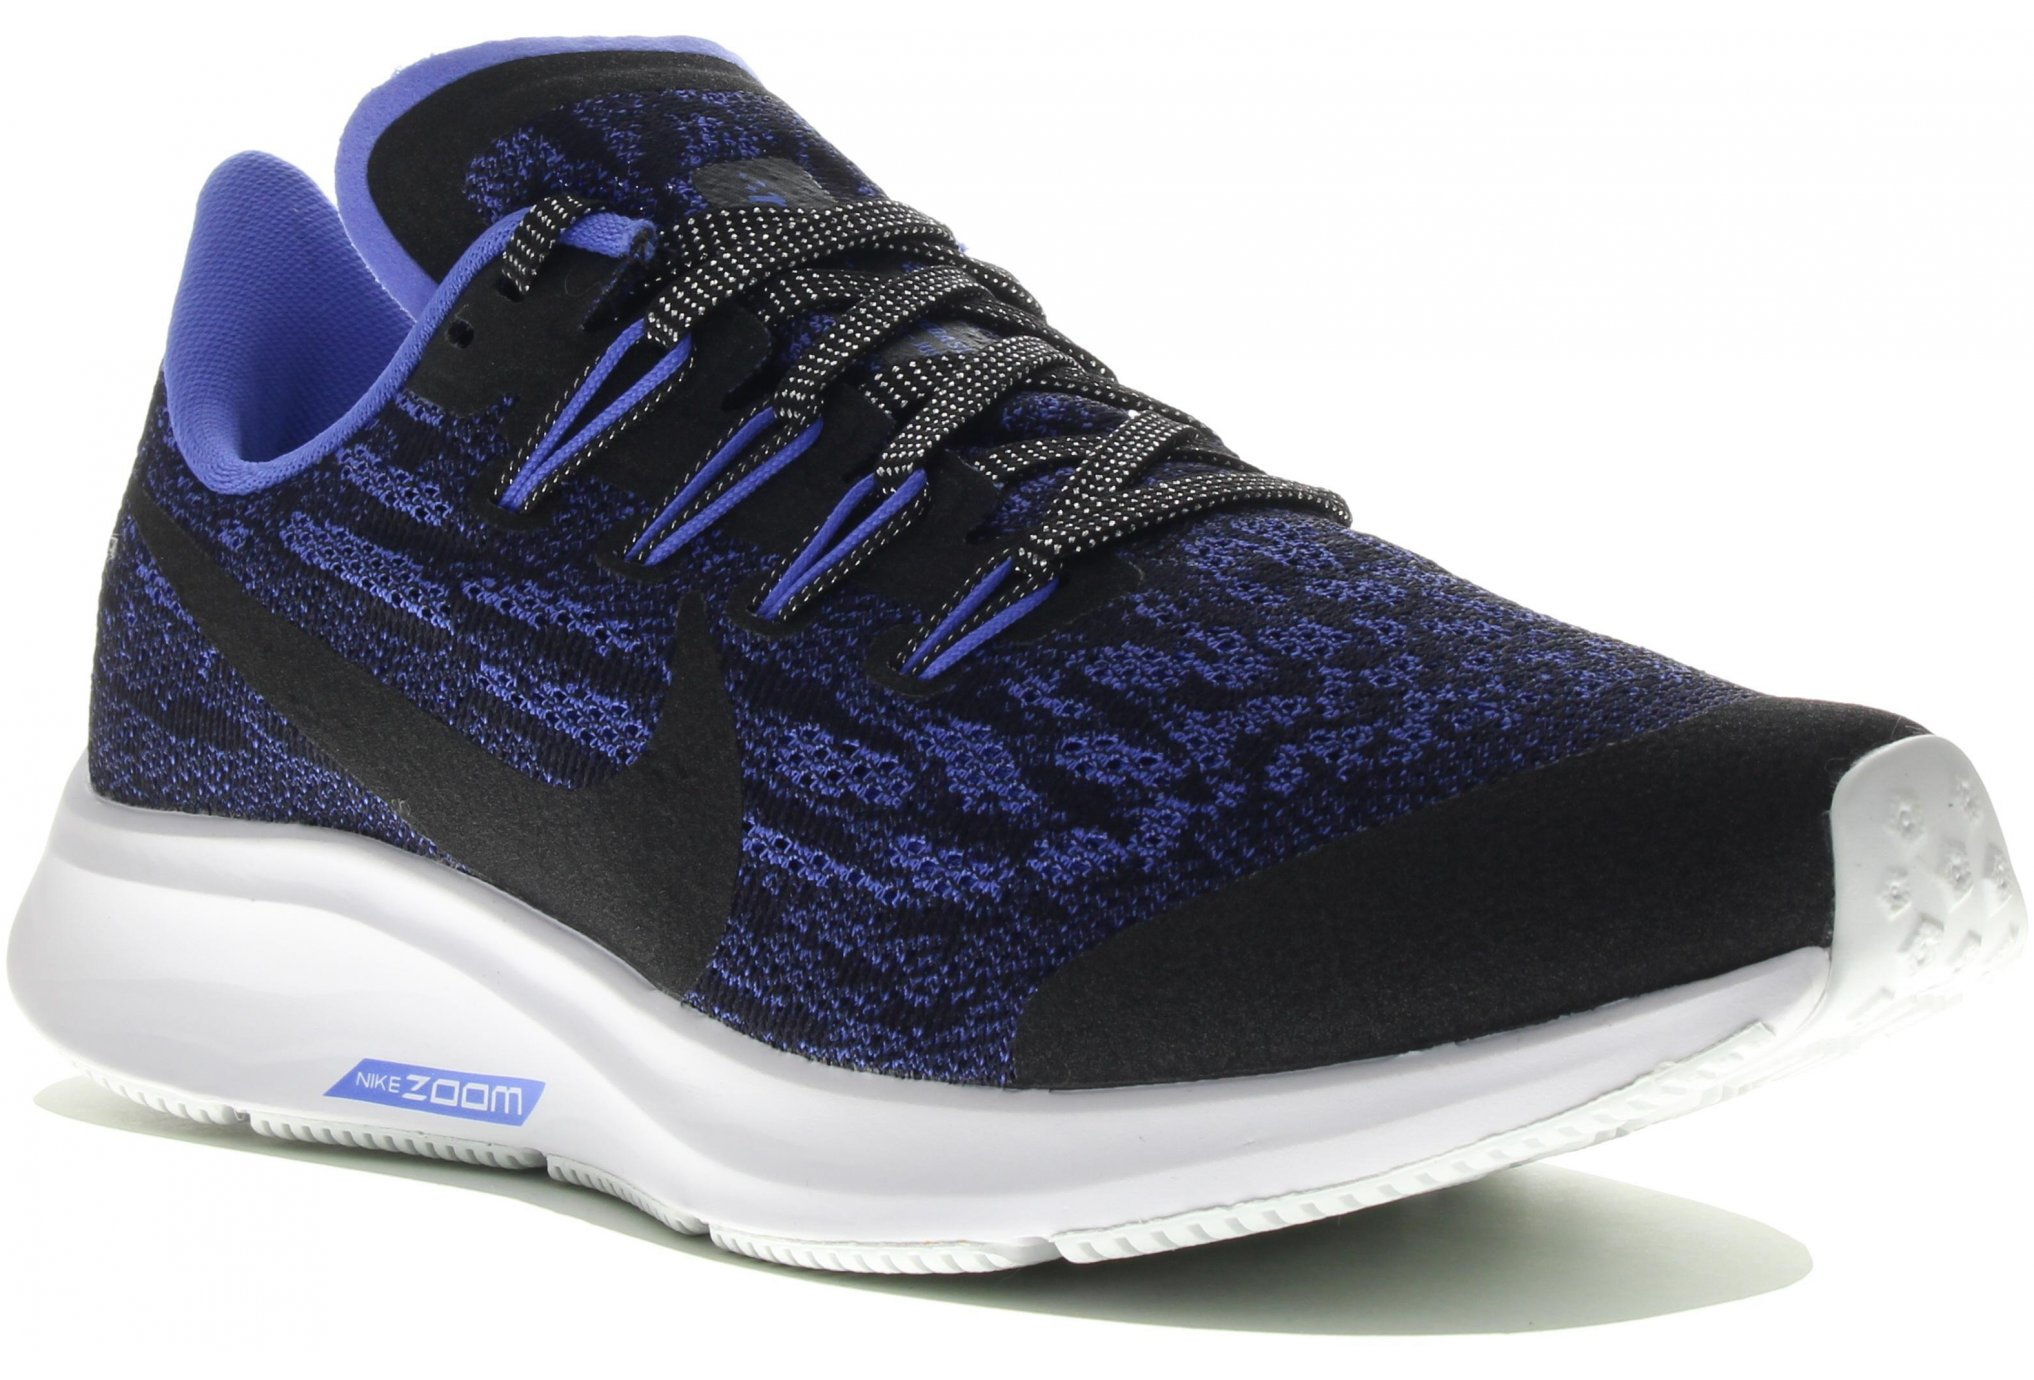 Nike Air Zoom Pegasus 36 Glitter Chaussures running femme